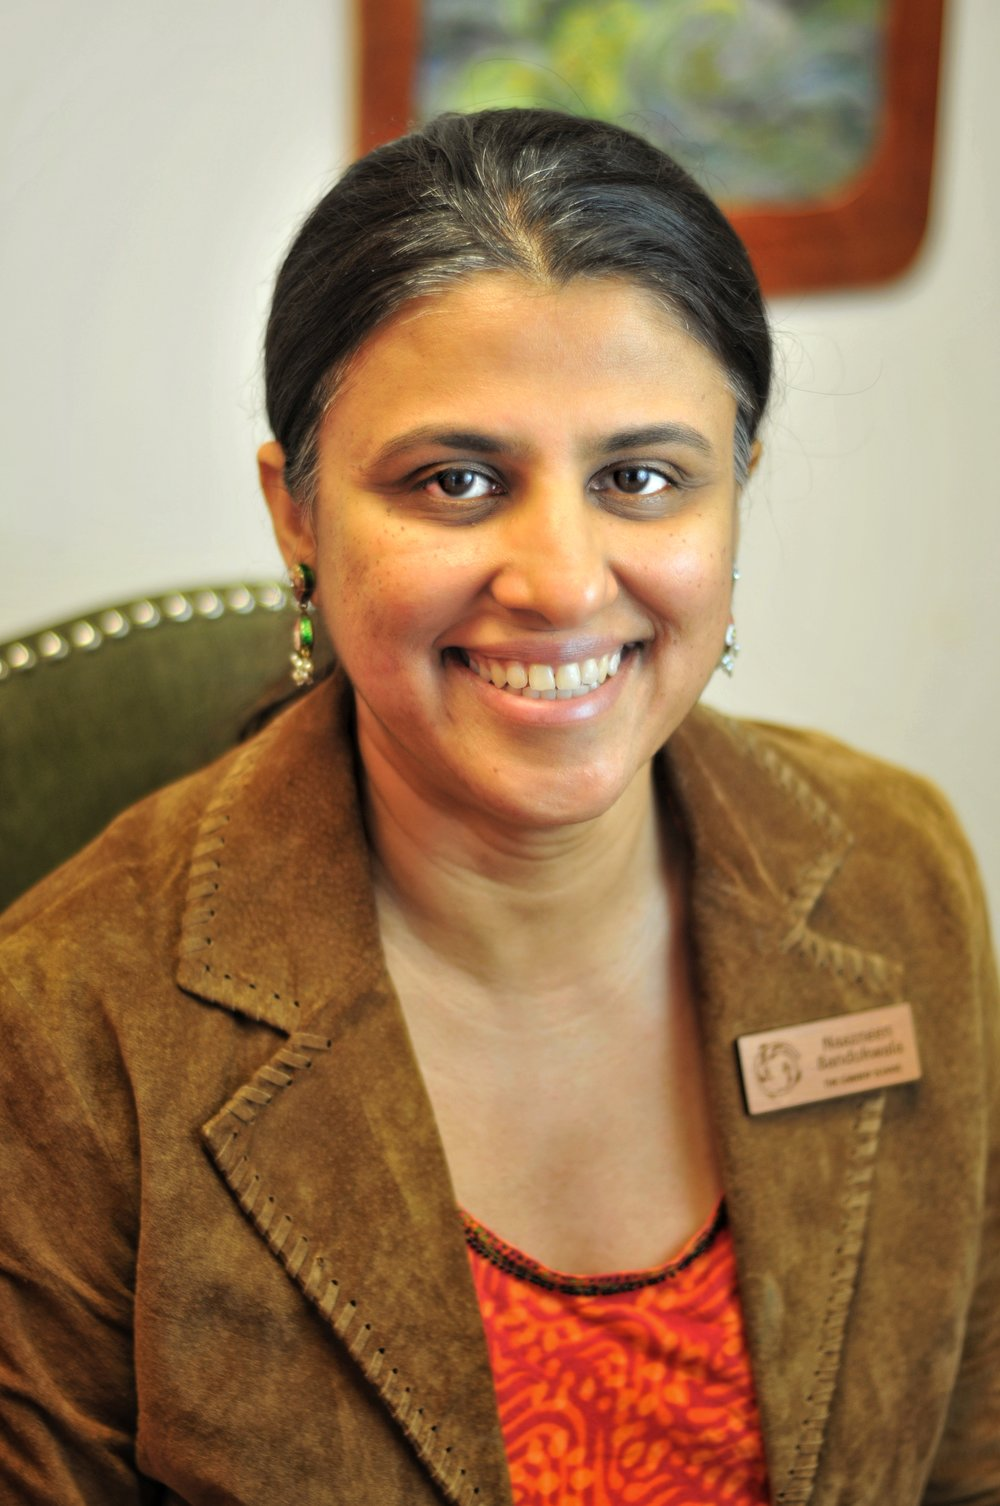 Naazneen Bandukwala   With a background in education, school psychology, research, and child development, Naazneen brings a broad expertise to our administrative team. She enjoys sharing the great outdoors with her two daughters.